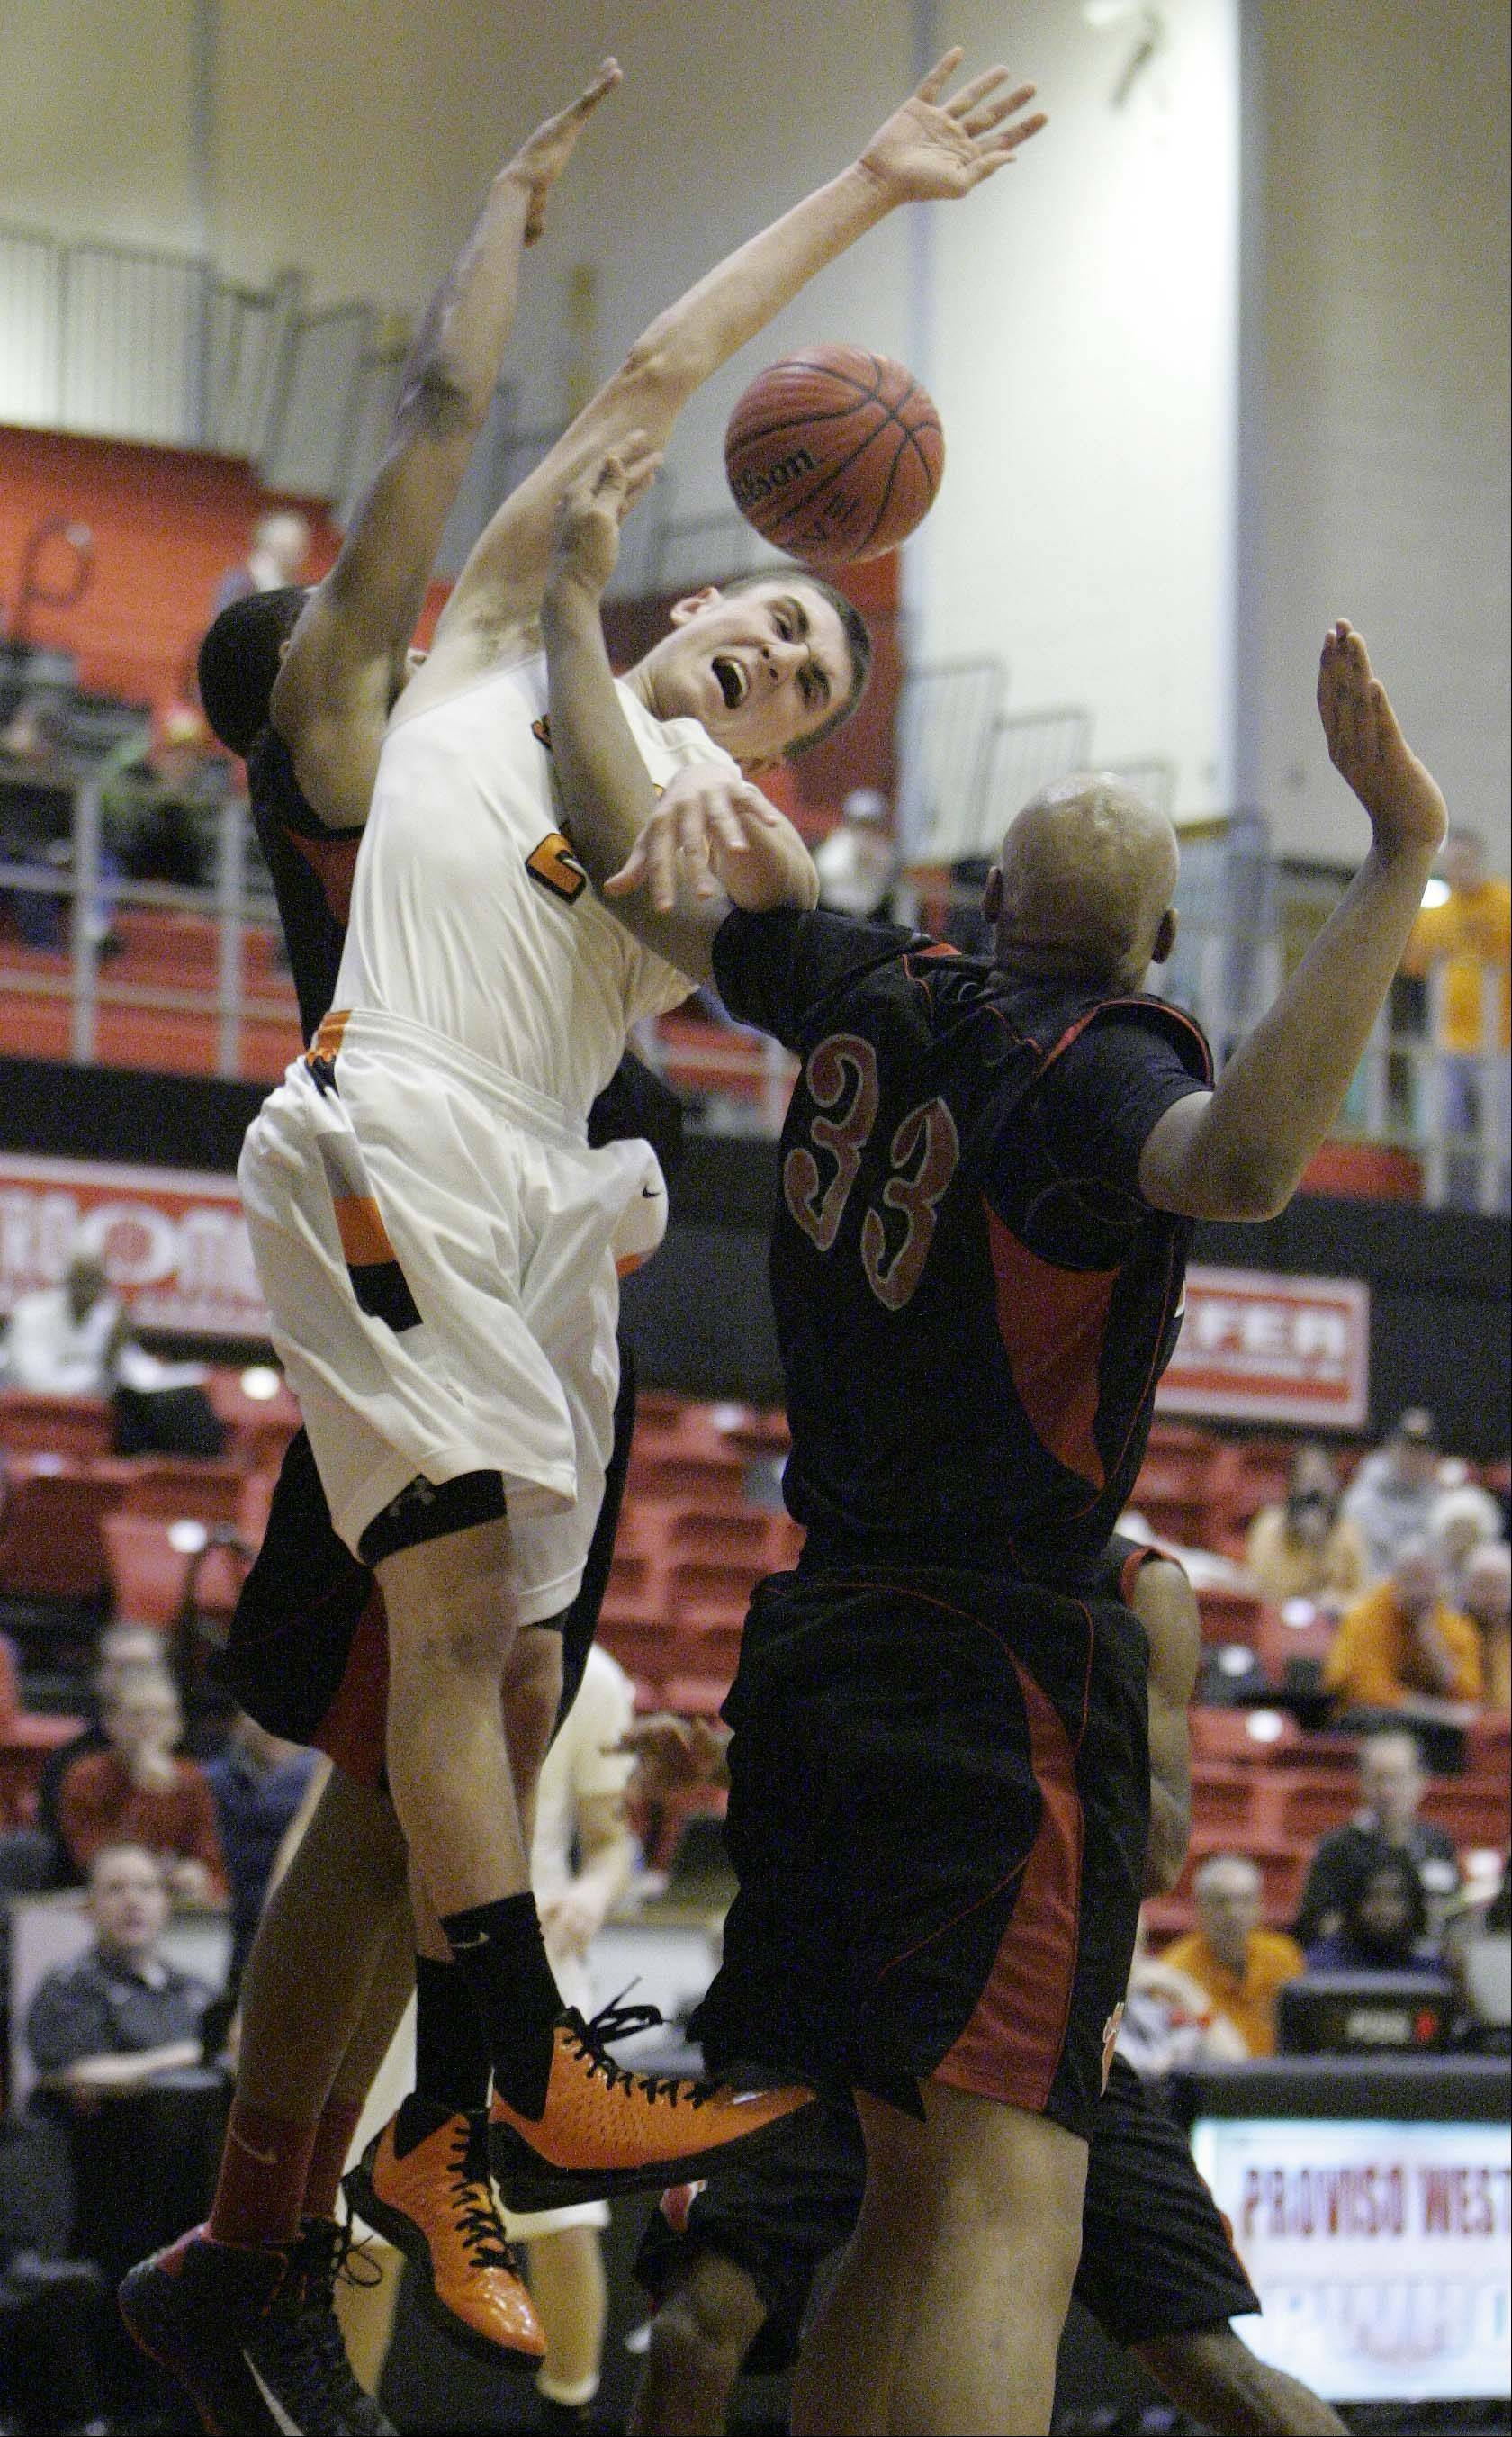 St. Charles East's Dom Adduci, 2, goes to the hoop past Von Steuben's Malachi Matias, 33, at the Proviso West Holiday Tournament in Hillside, Wednesday December 26, 2012.